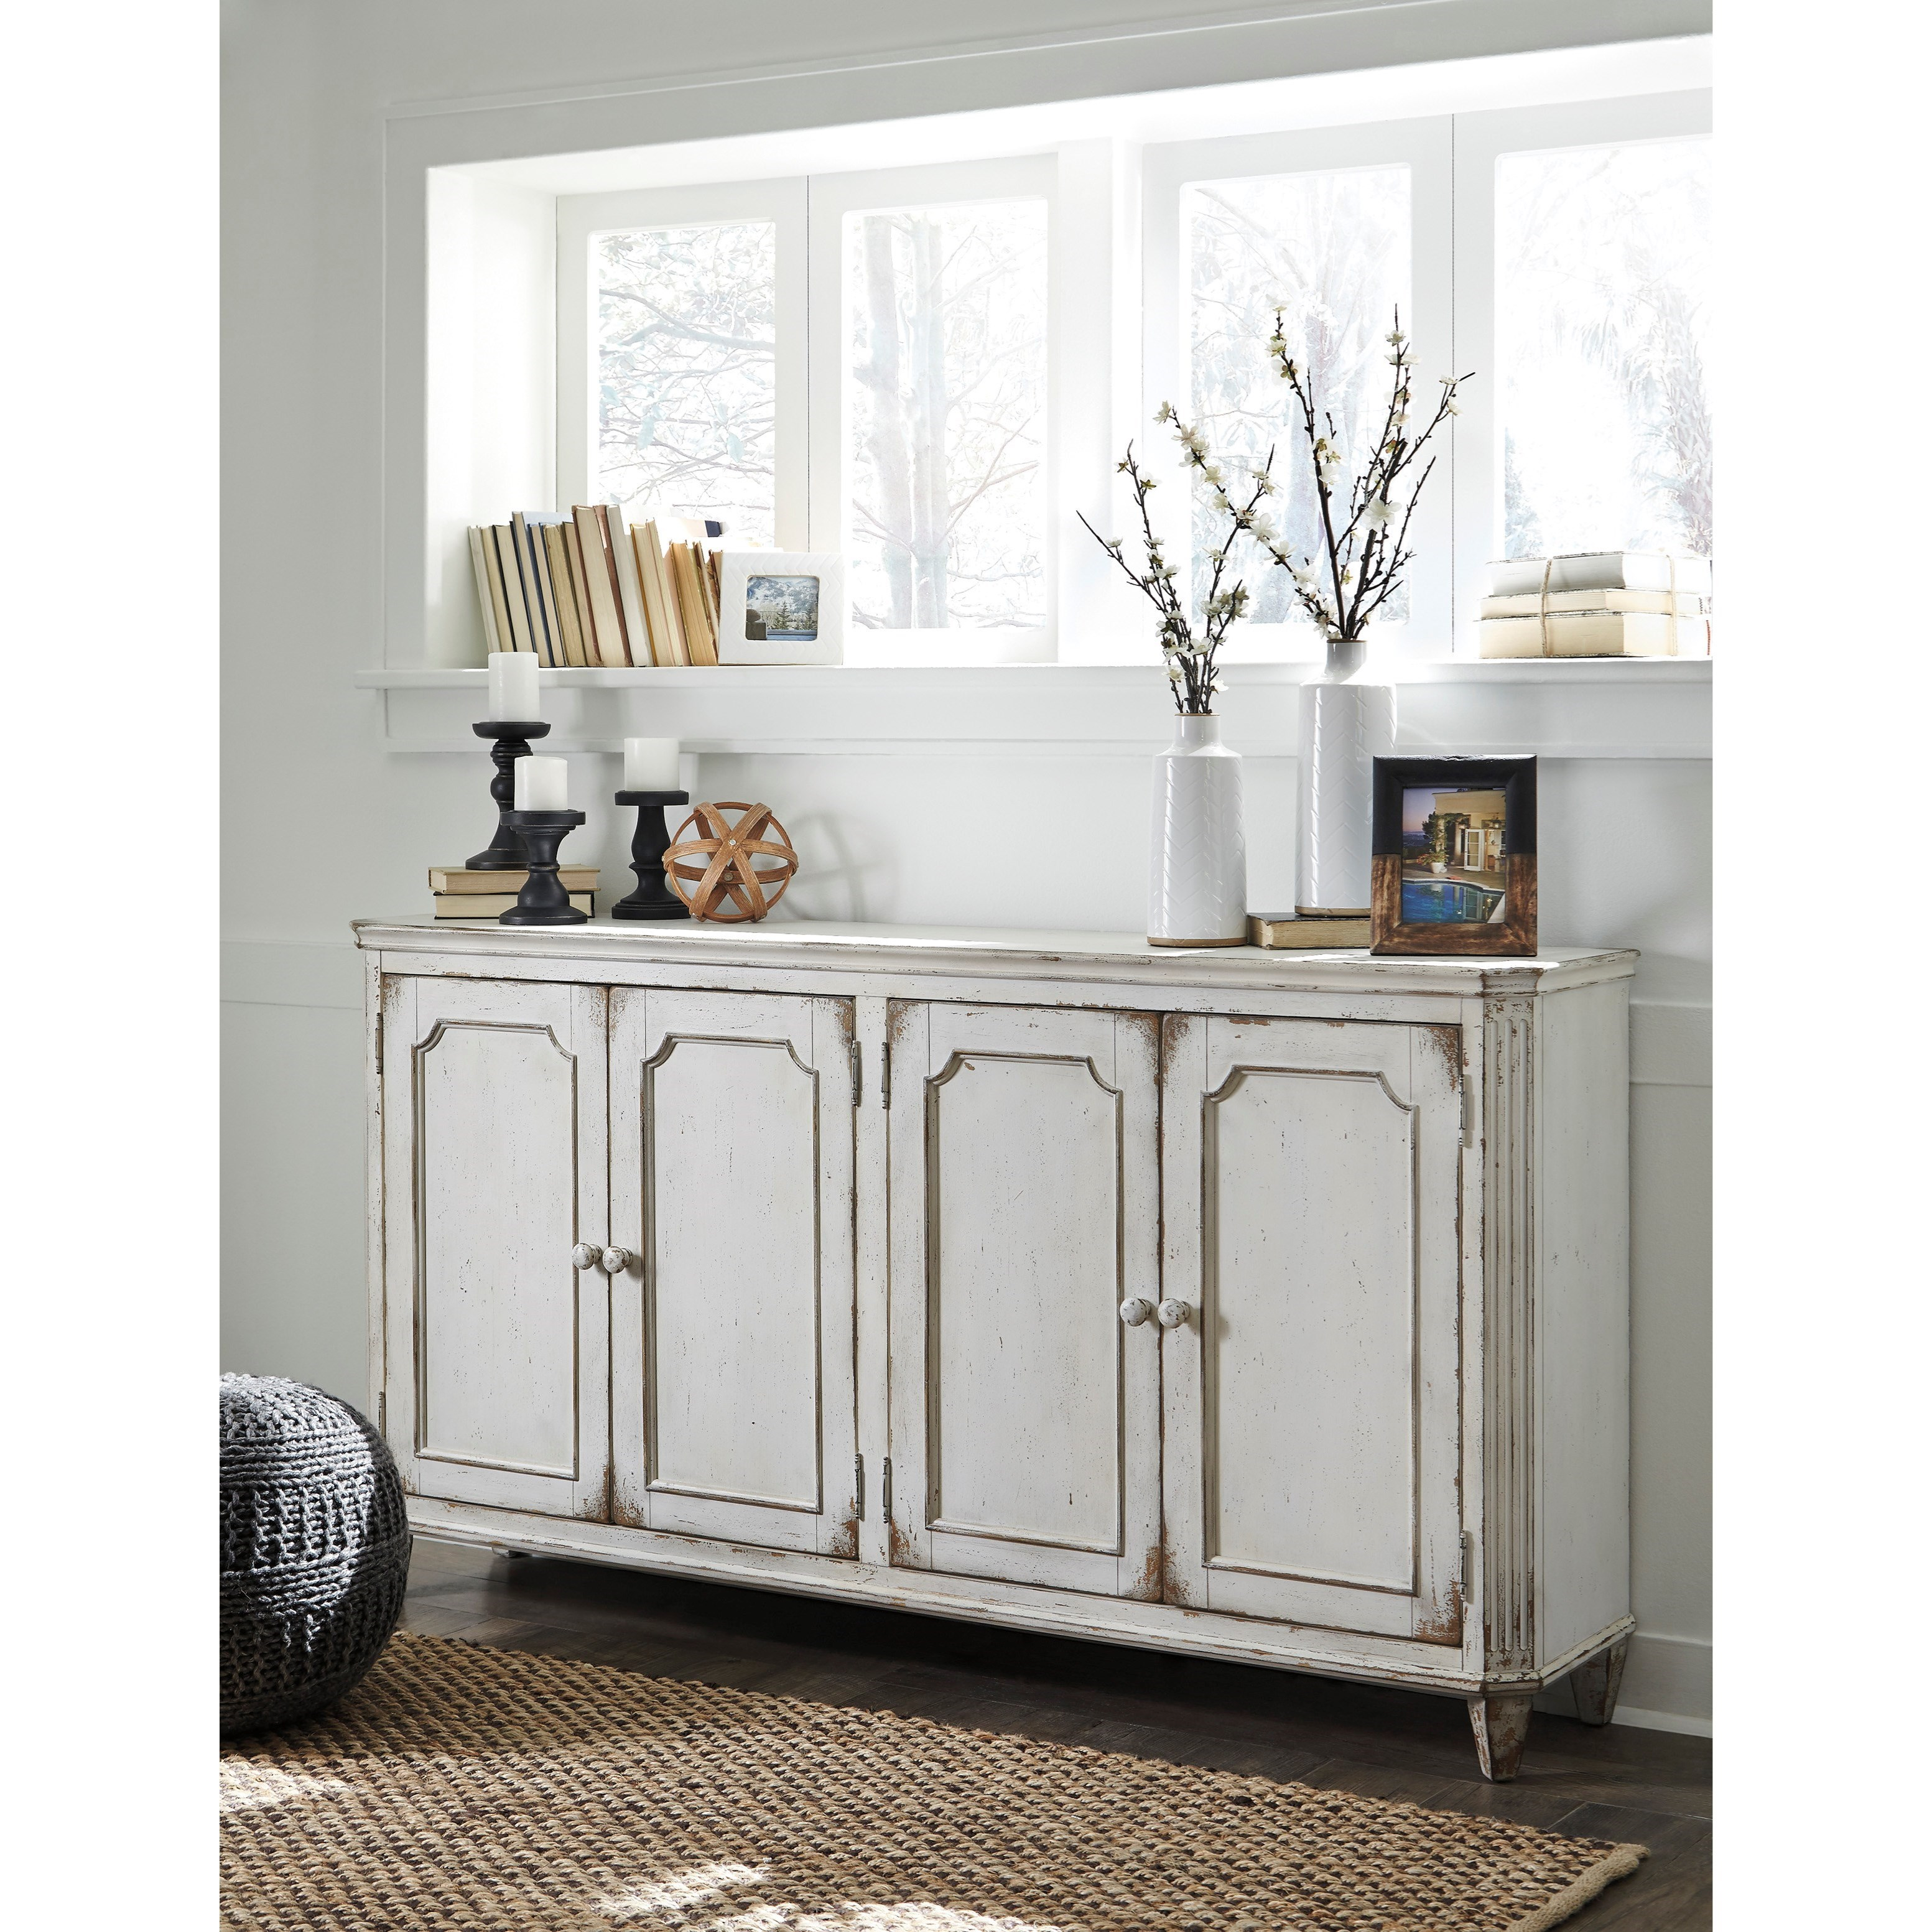 Mirimyn French Provincial Style Door Accent Cabinet In